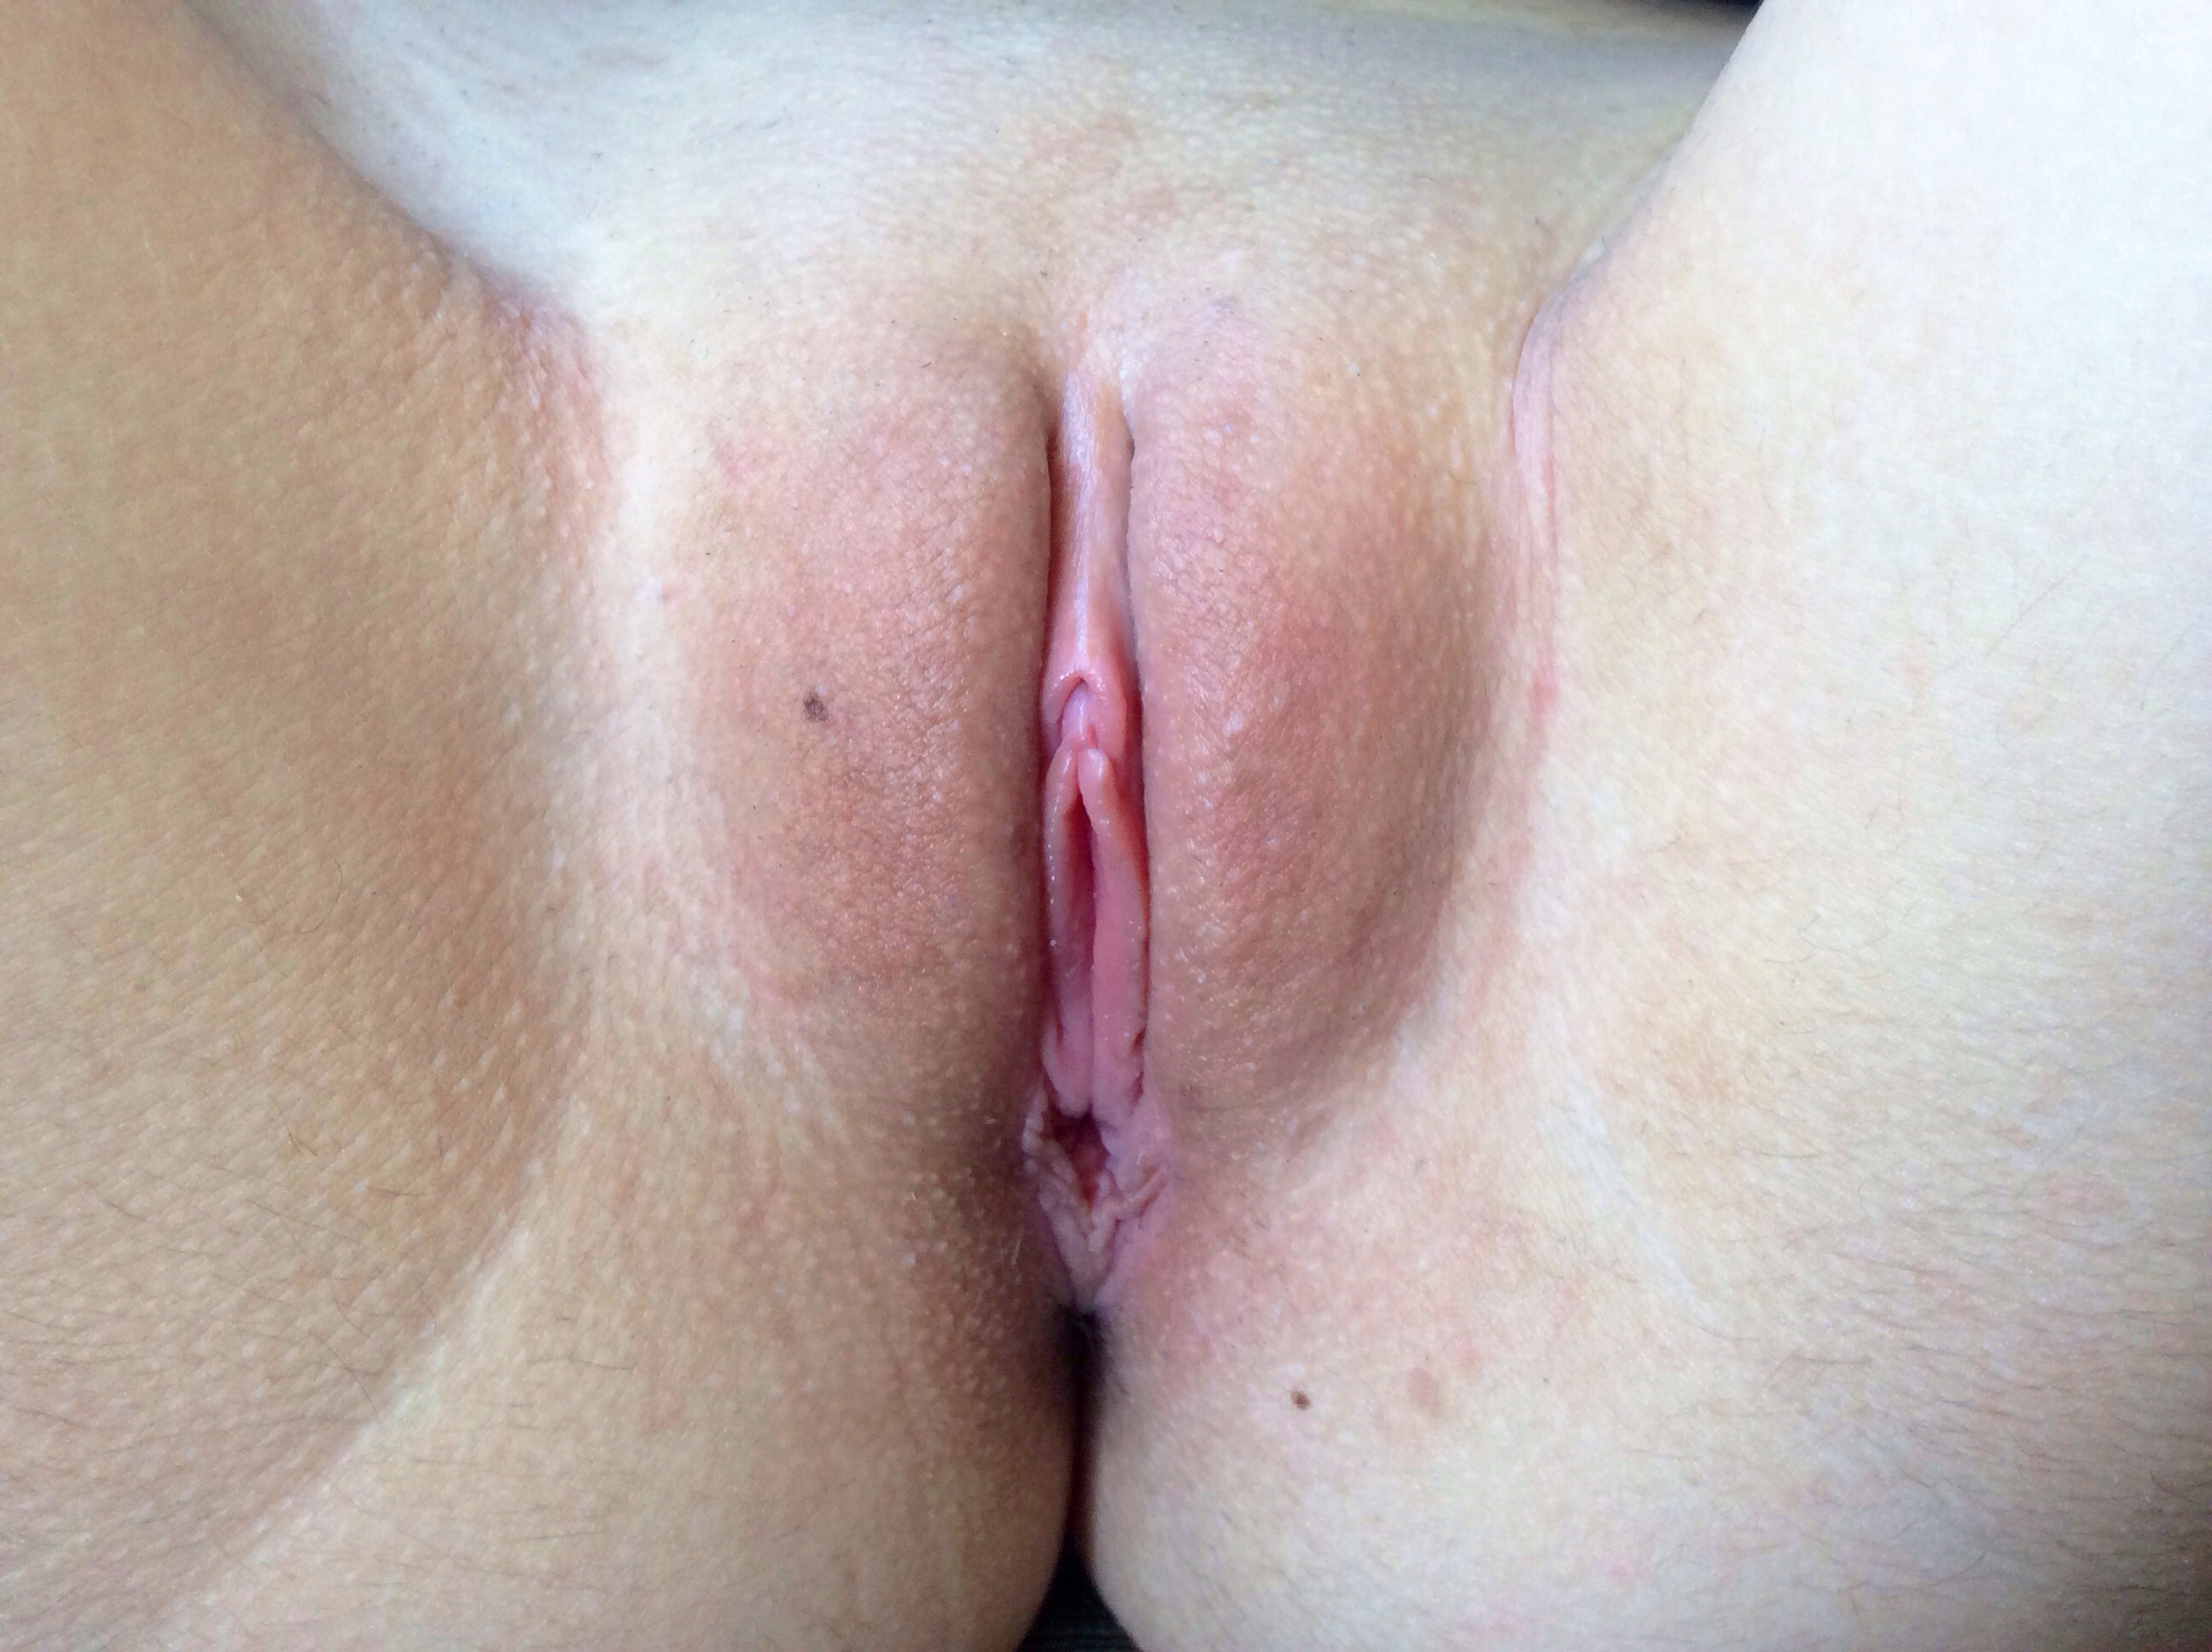 file:shaved vulva - wikimedia commons